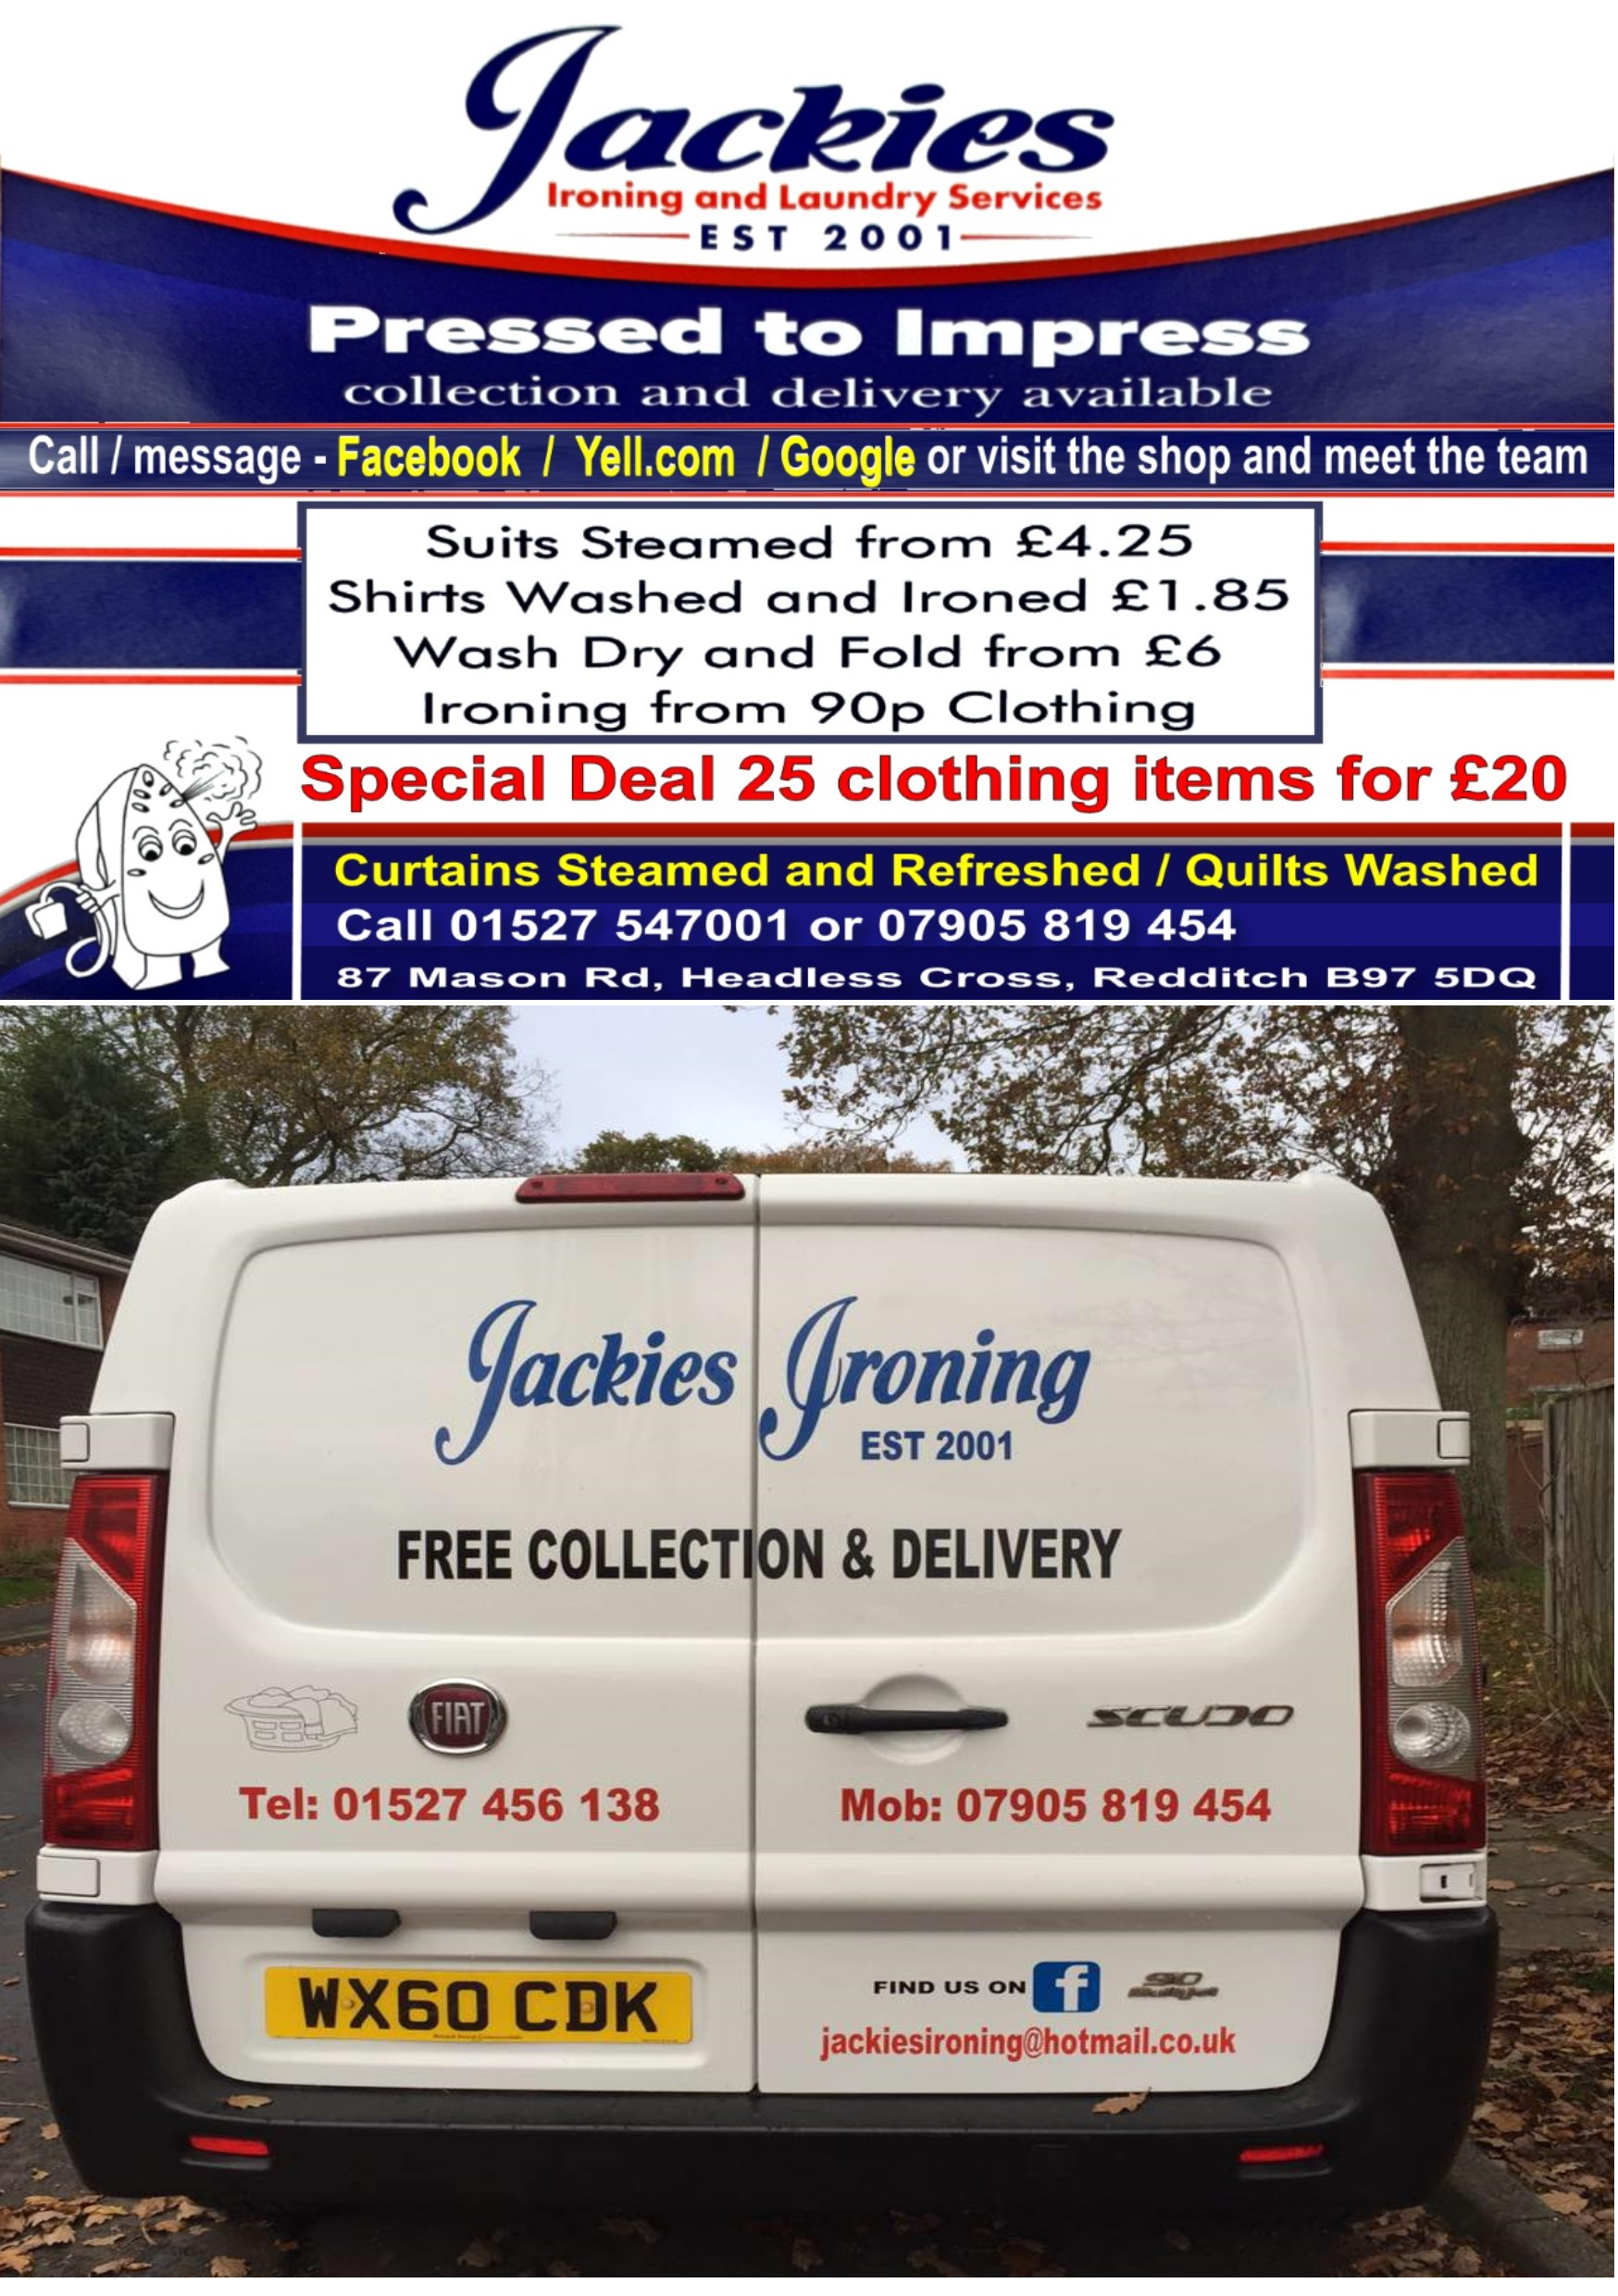 JACKIES IRONING AND LAUNDRY SERVICE REDDITCH BROMSGROVE DRY CLEANING